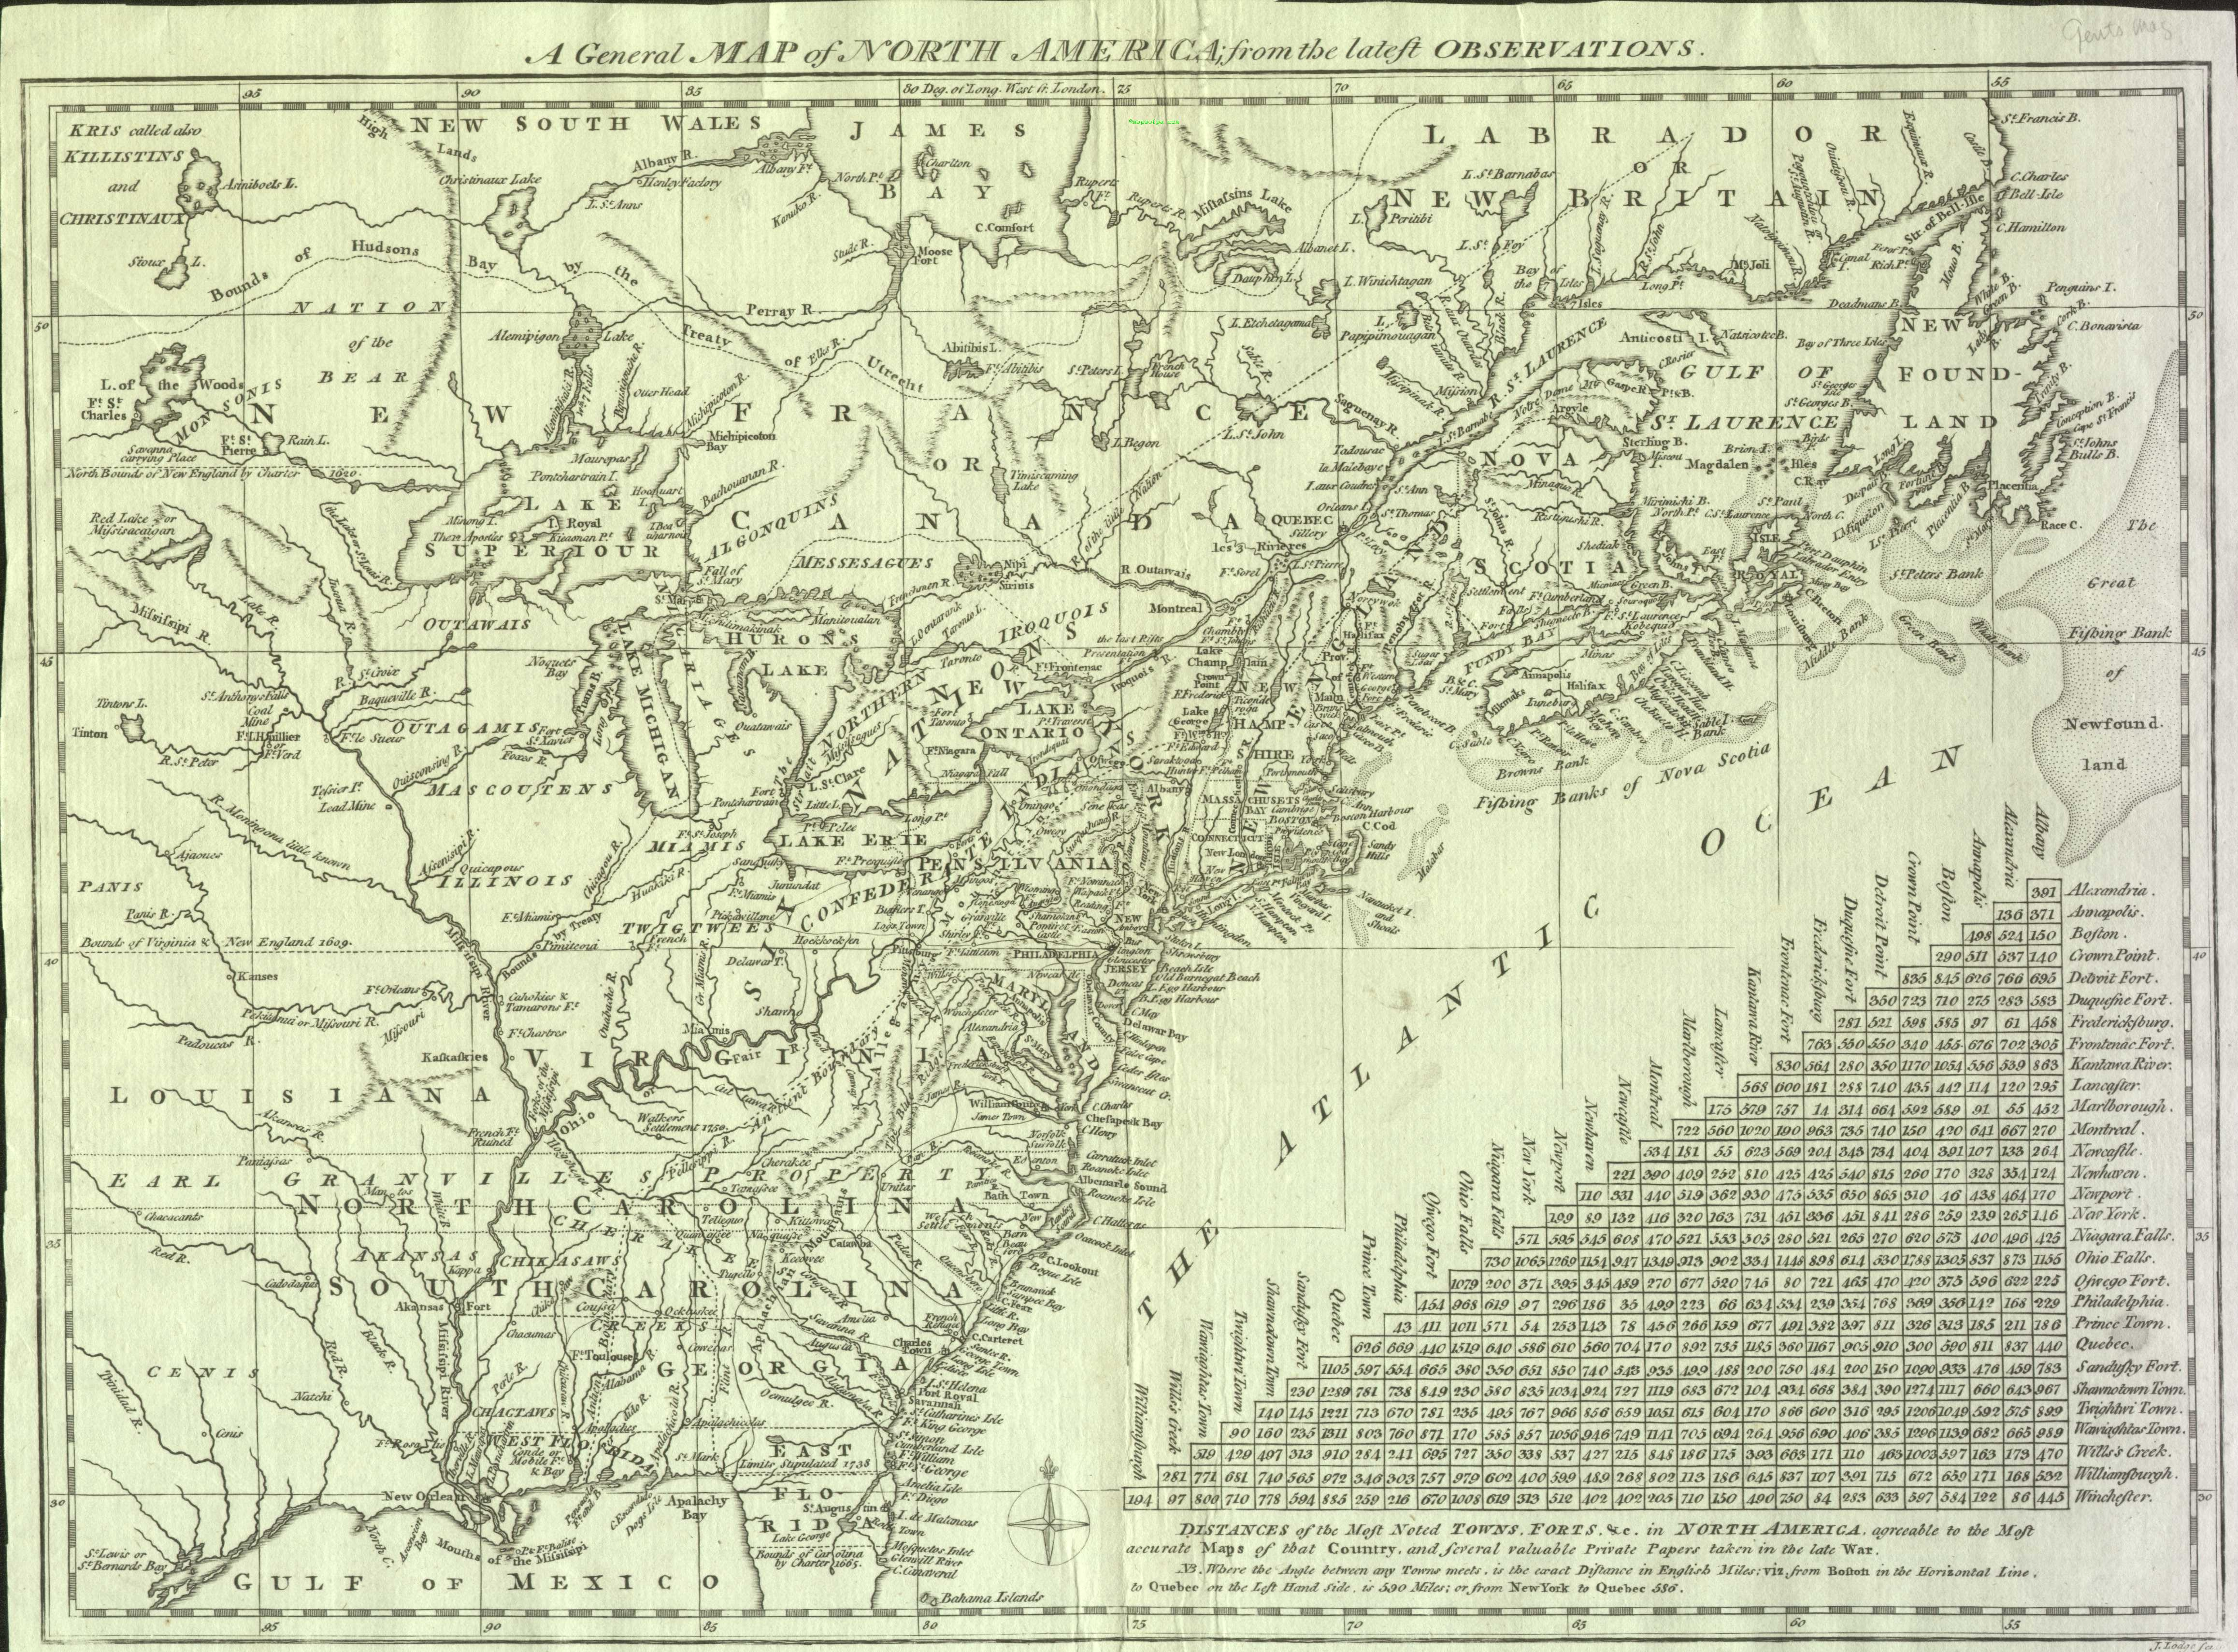 together with US Map Collection   Old Historical U S  and State Maps additionally Colonial America 1776 Map   likeat me as well  further Historic and Important Antique Map of Colonial America at Start of furthermore 013 The Revolutionary War in the North   West  1776 1780 – KAPPA additionally  also 1775 to 1779 Pennsylvania Maps moreover History of the United States  1776–1789    Wikipedia as well 1775 to 1779 Pennsylvania Maps together with Old Map   South Pacific Ocean with South America 1776 in addition Map Of The American Revolution From 1776 Stock Illustration likewise  as well  further Hargrett Liry Rare Map Collection   Revolutionary America further Map Of The United States 17831803  Map Showing The Territorial. on america map 1776